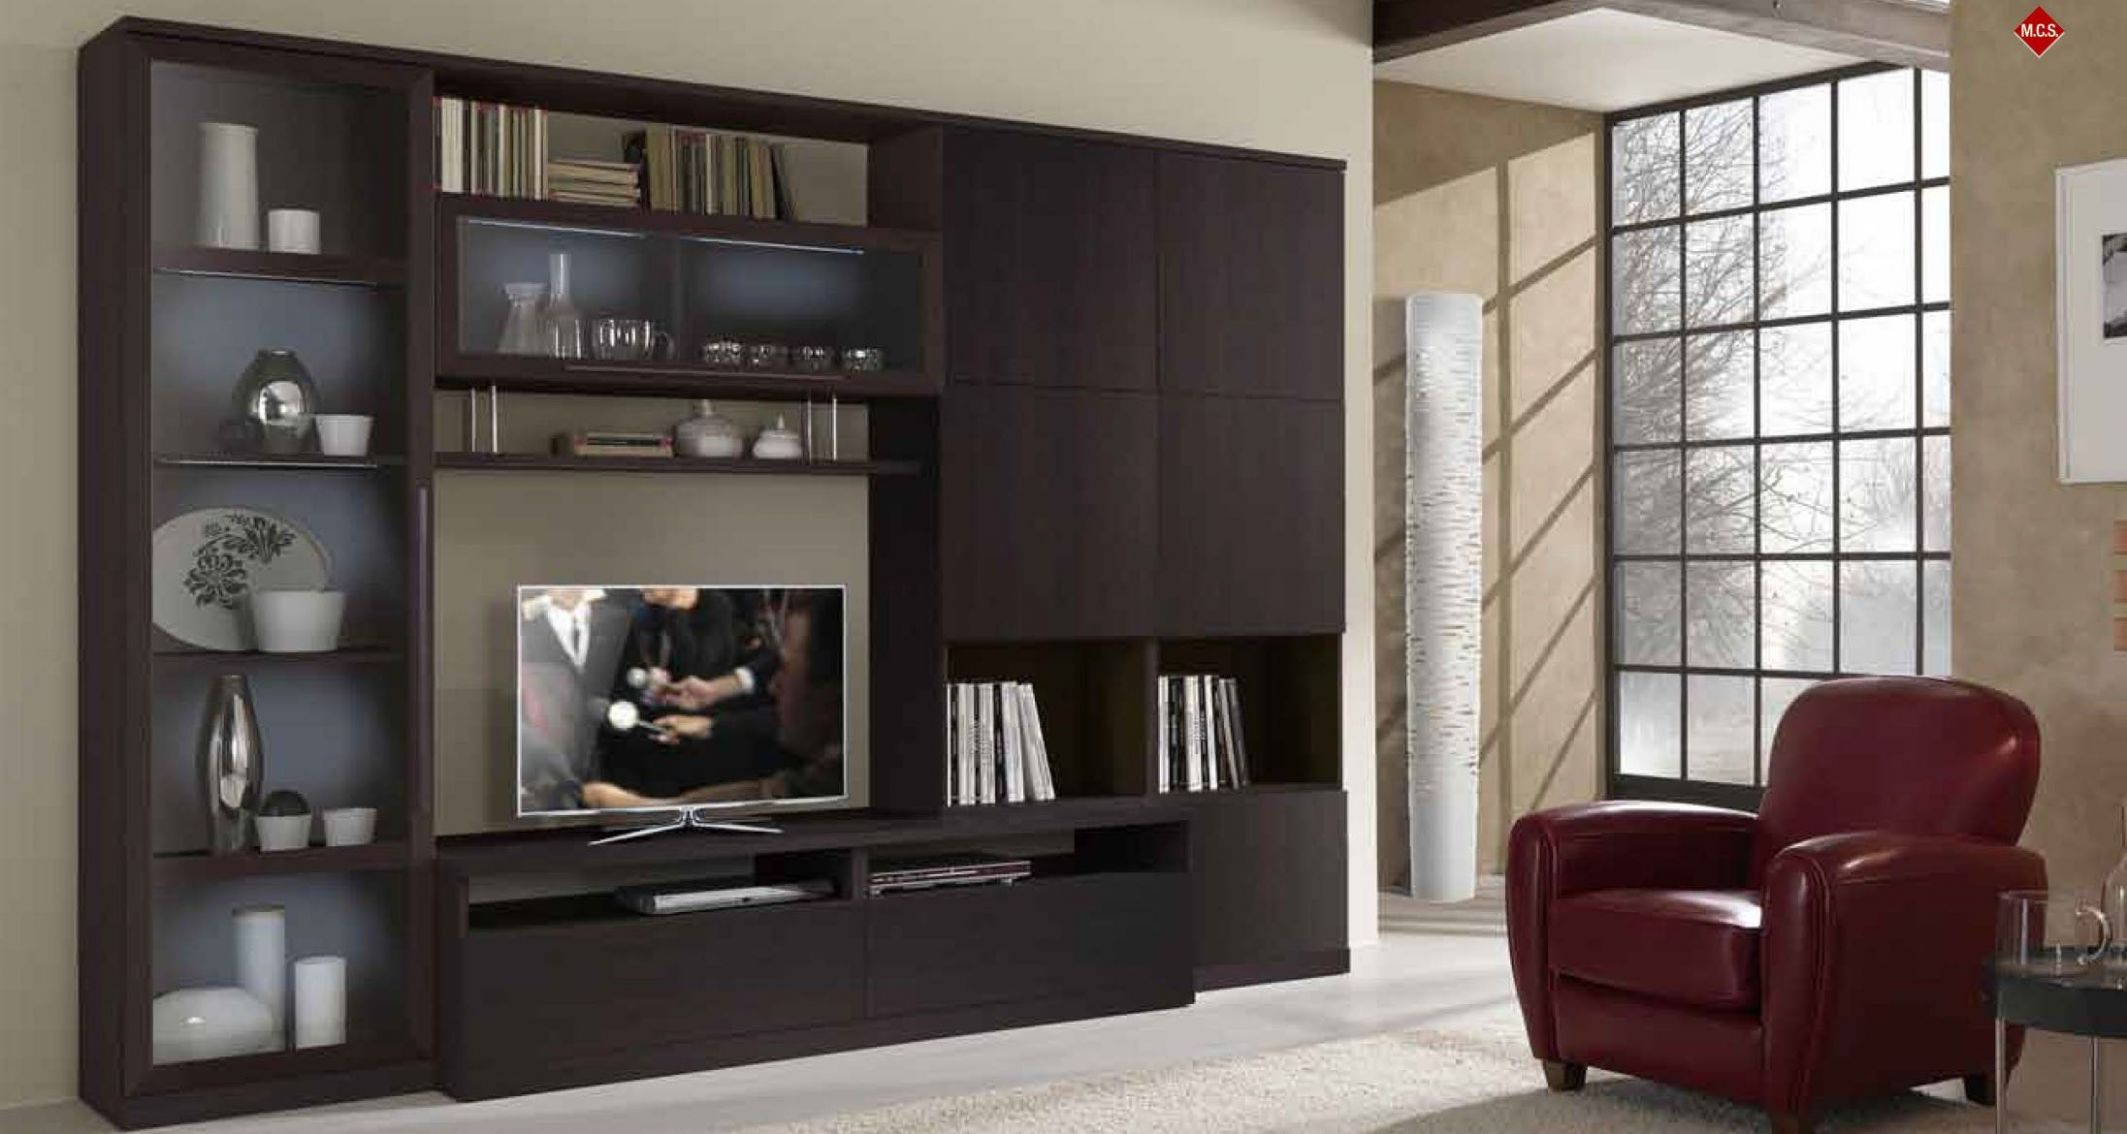 Home Built In Bar and wall unit ideas   Magnificent Living Room ..